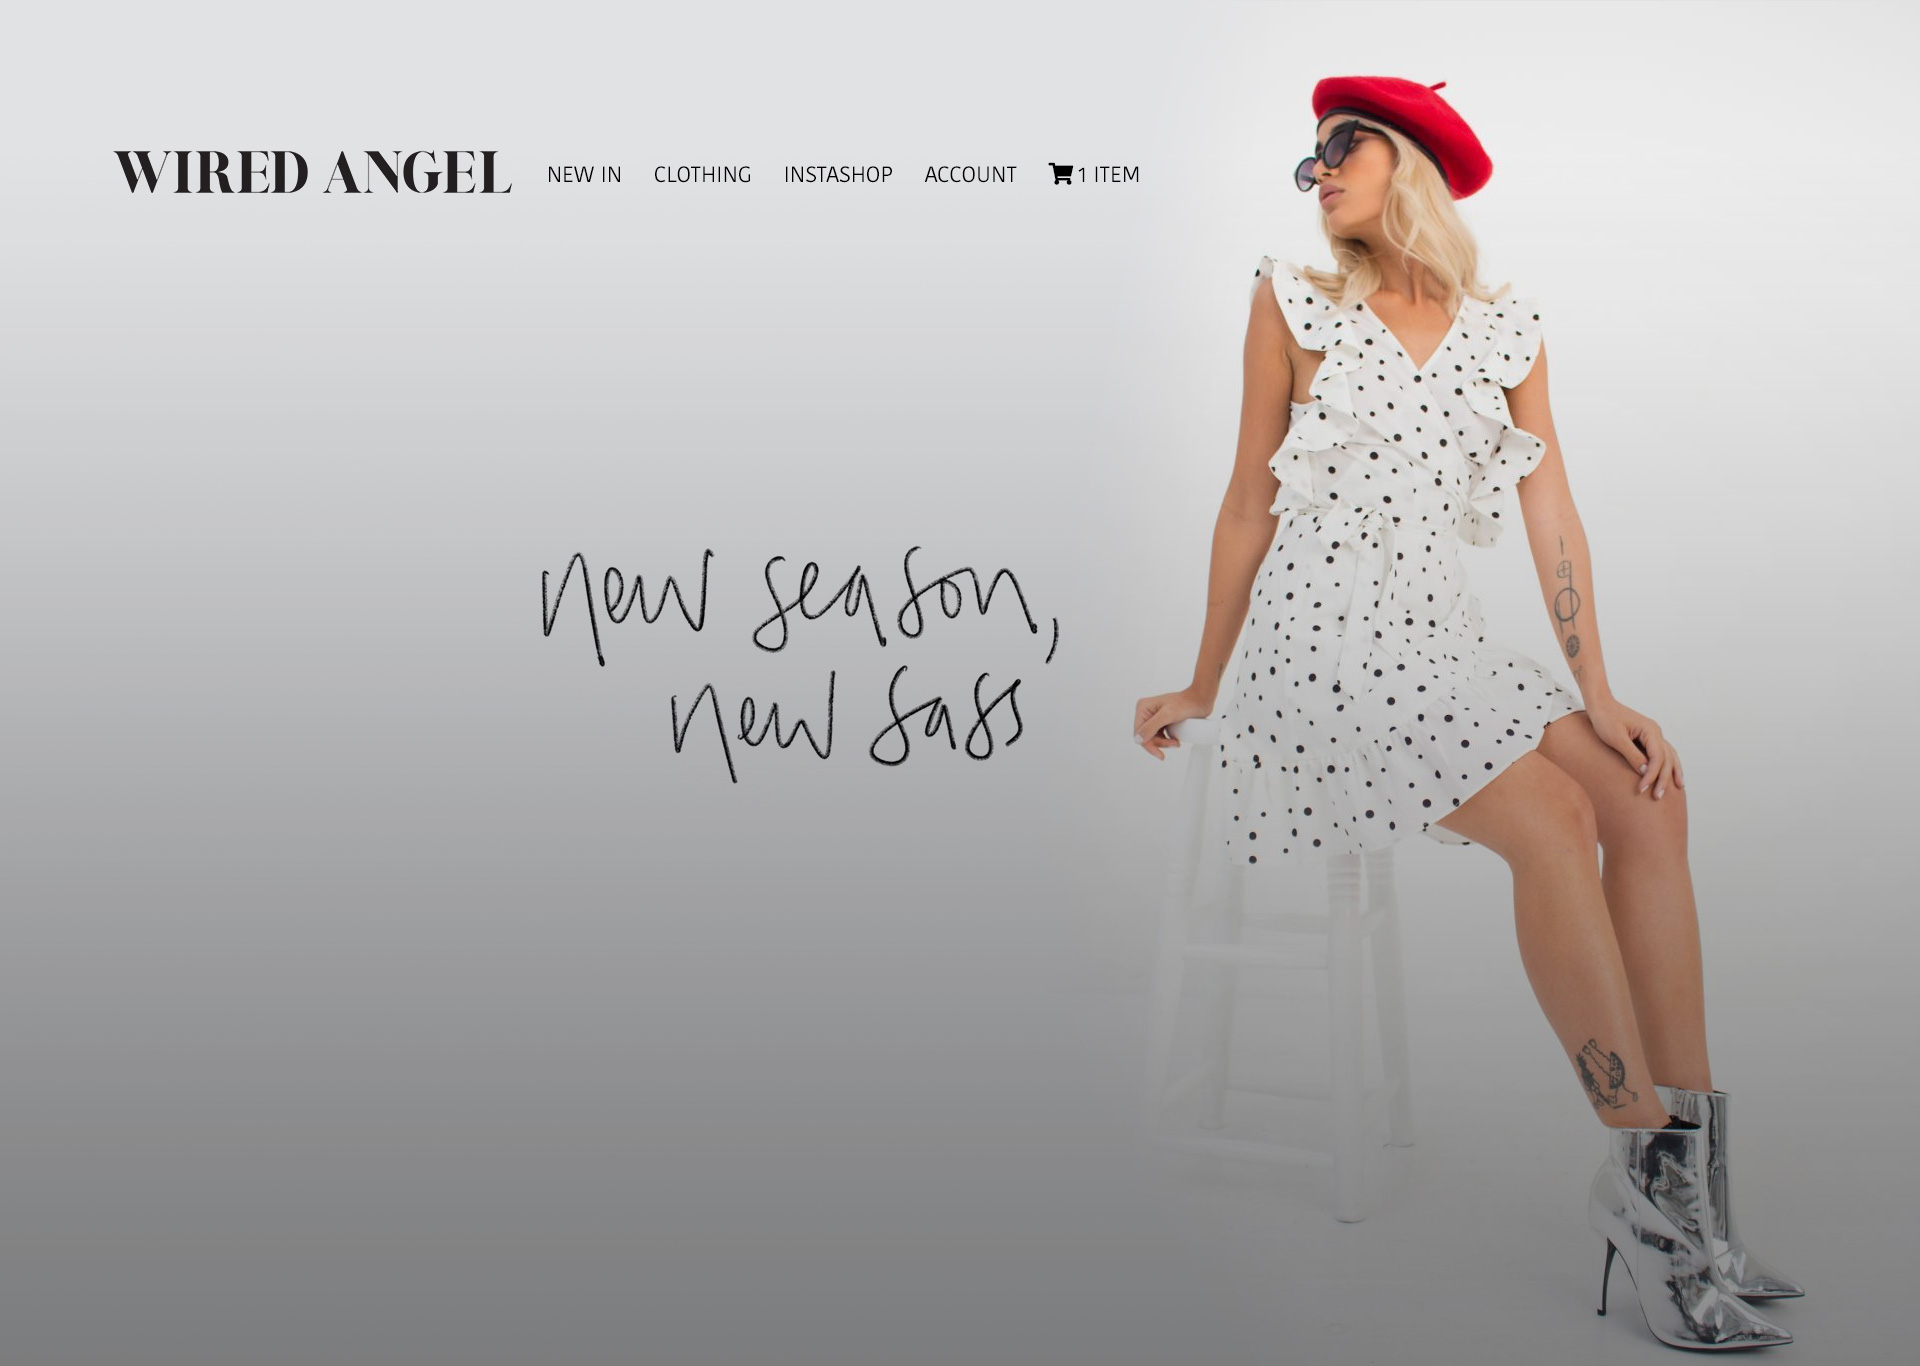 Wired Angel Fashion eCommerce Website image